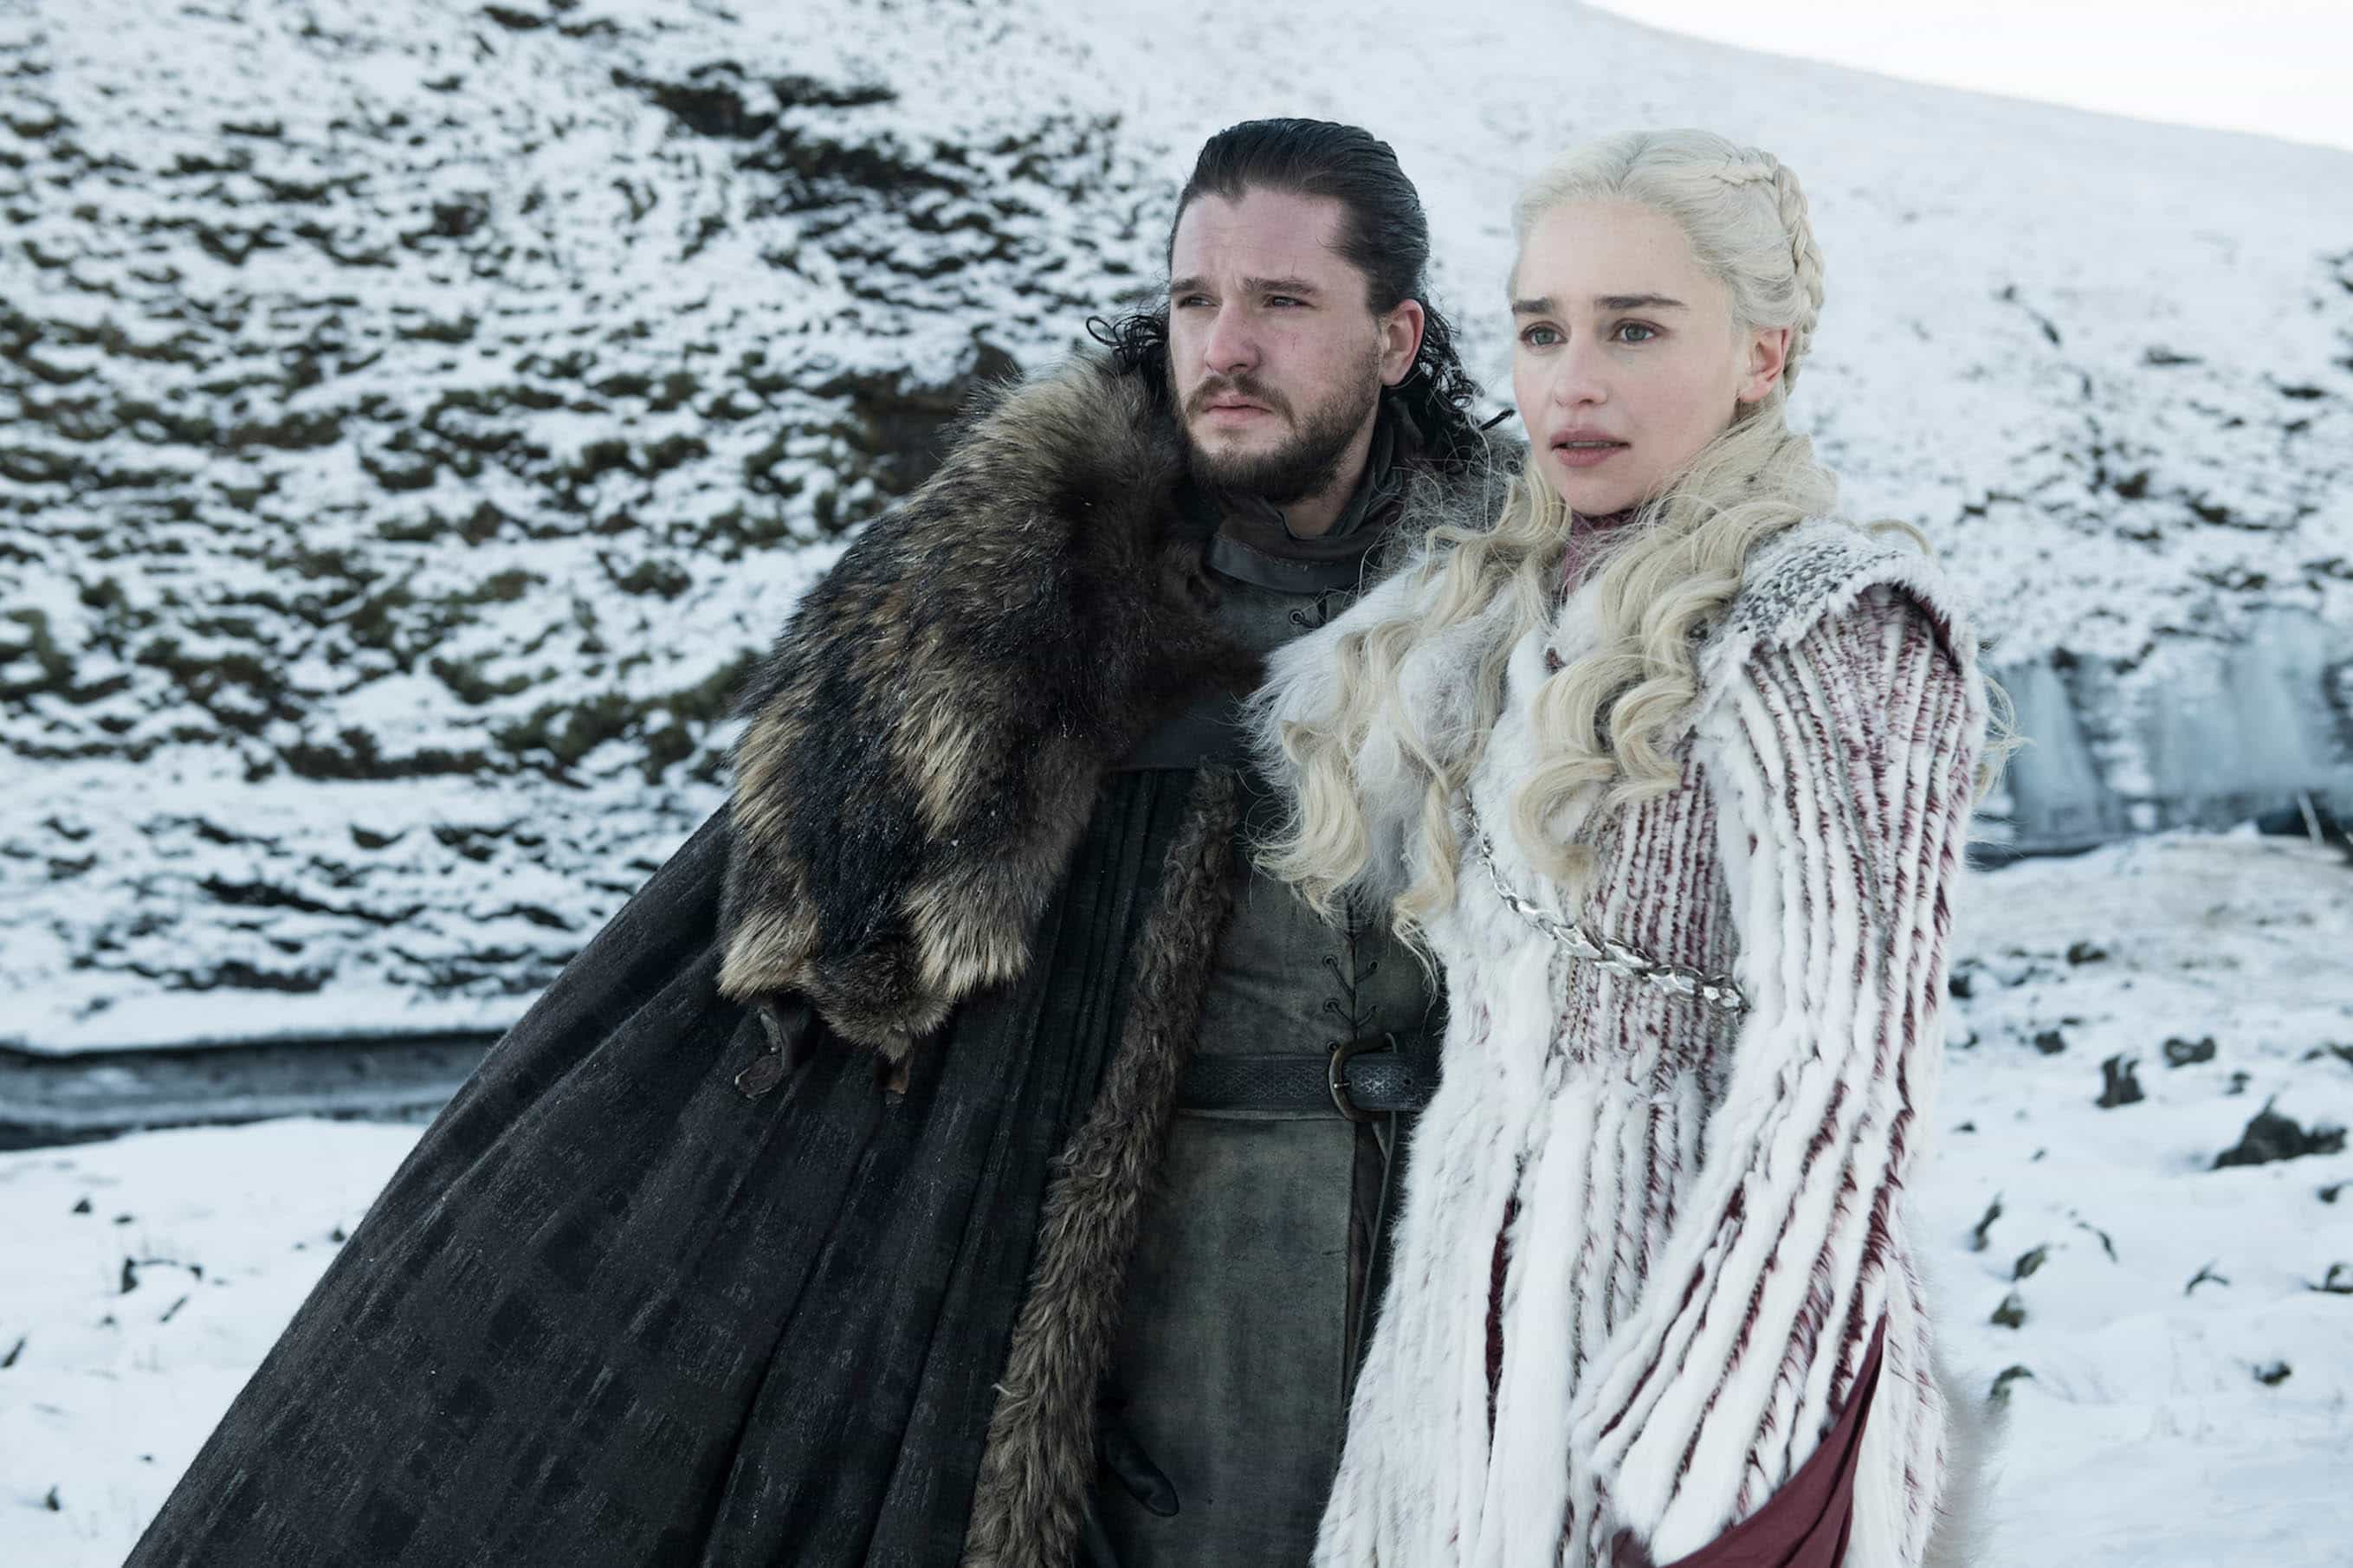 Jon Snow é favorito ao trono de 'Game of Thrones' nas casas de aposta